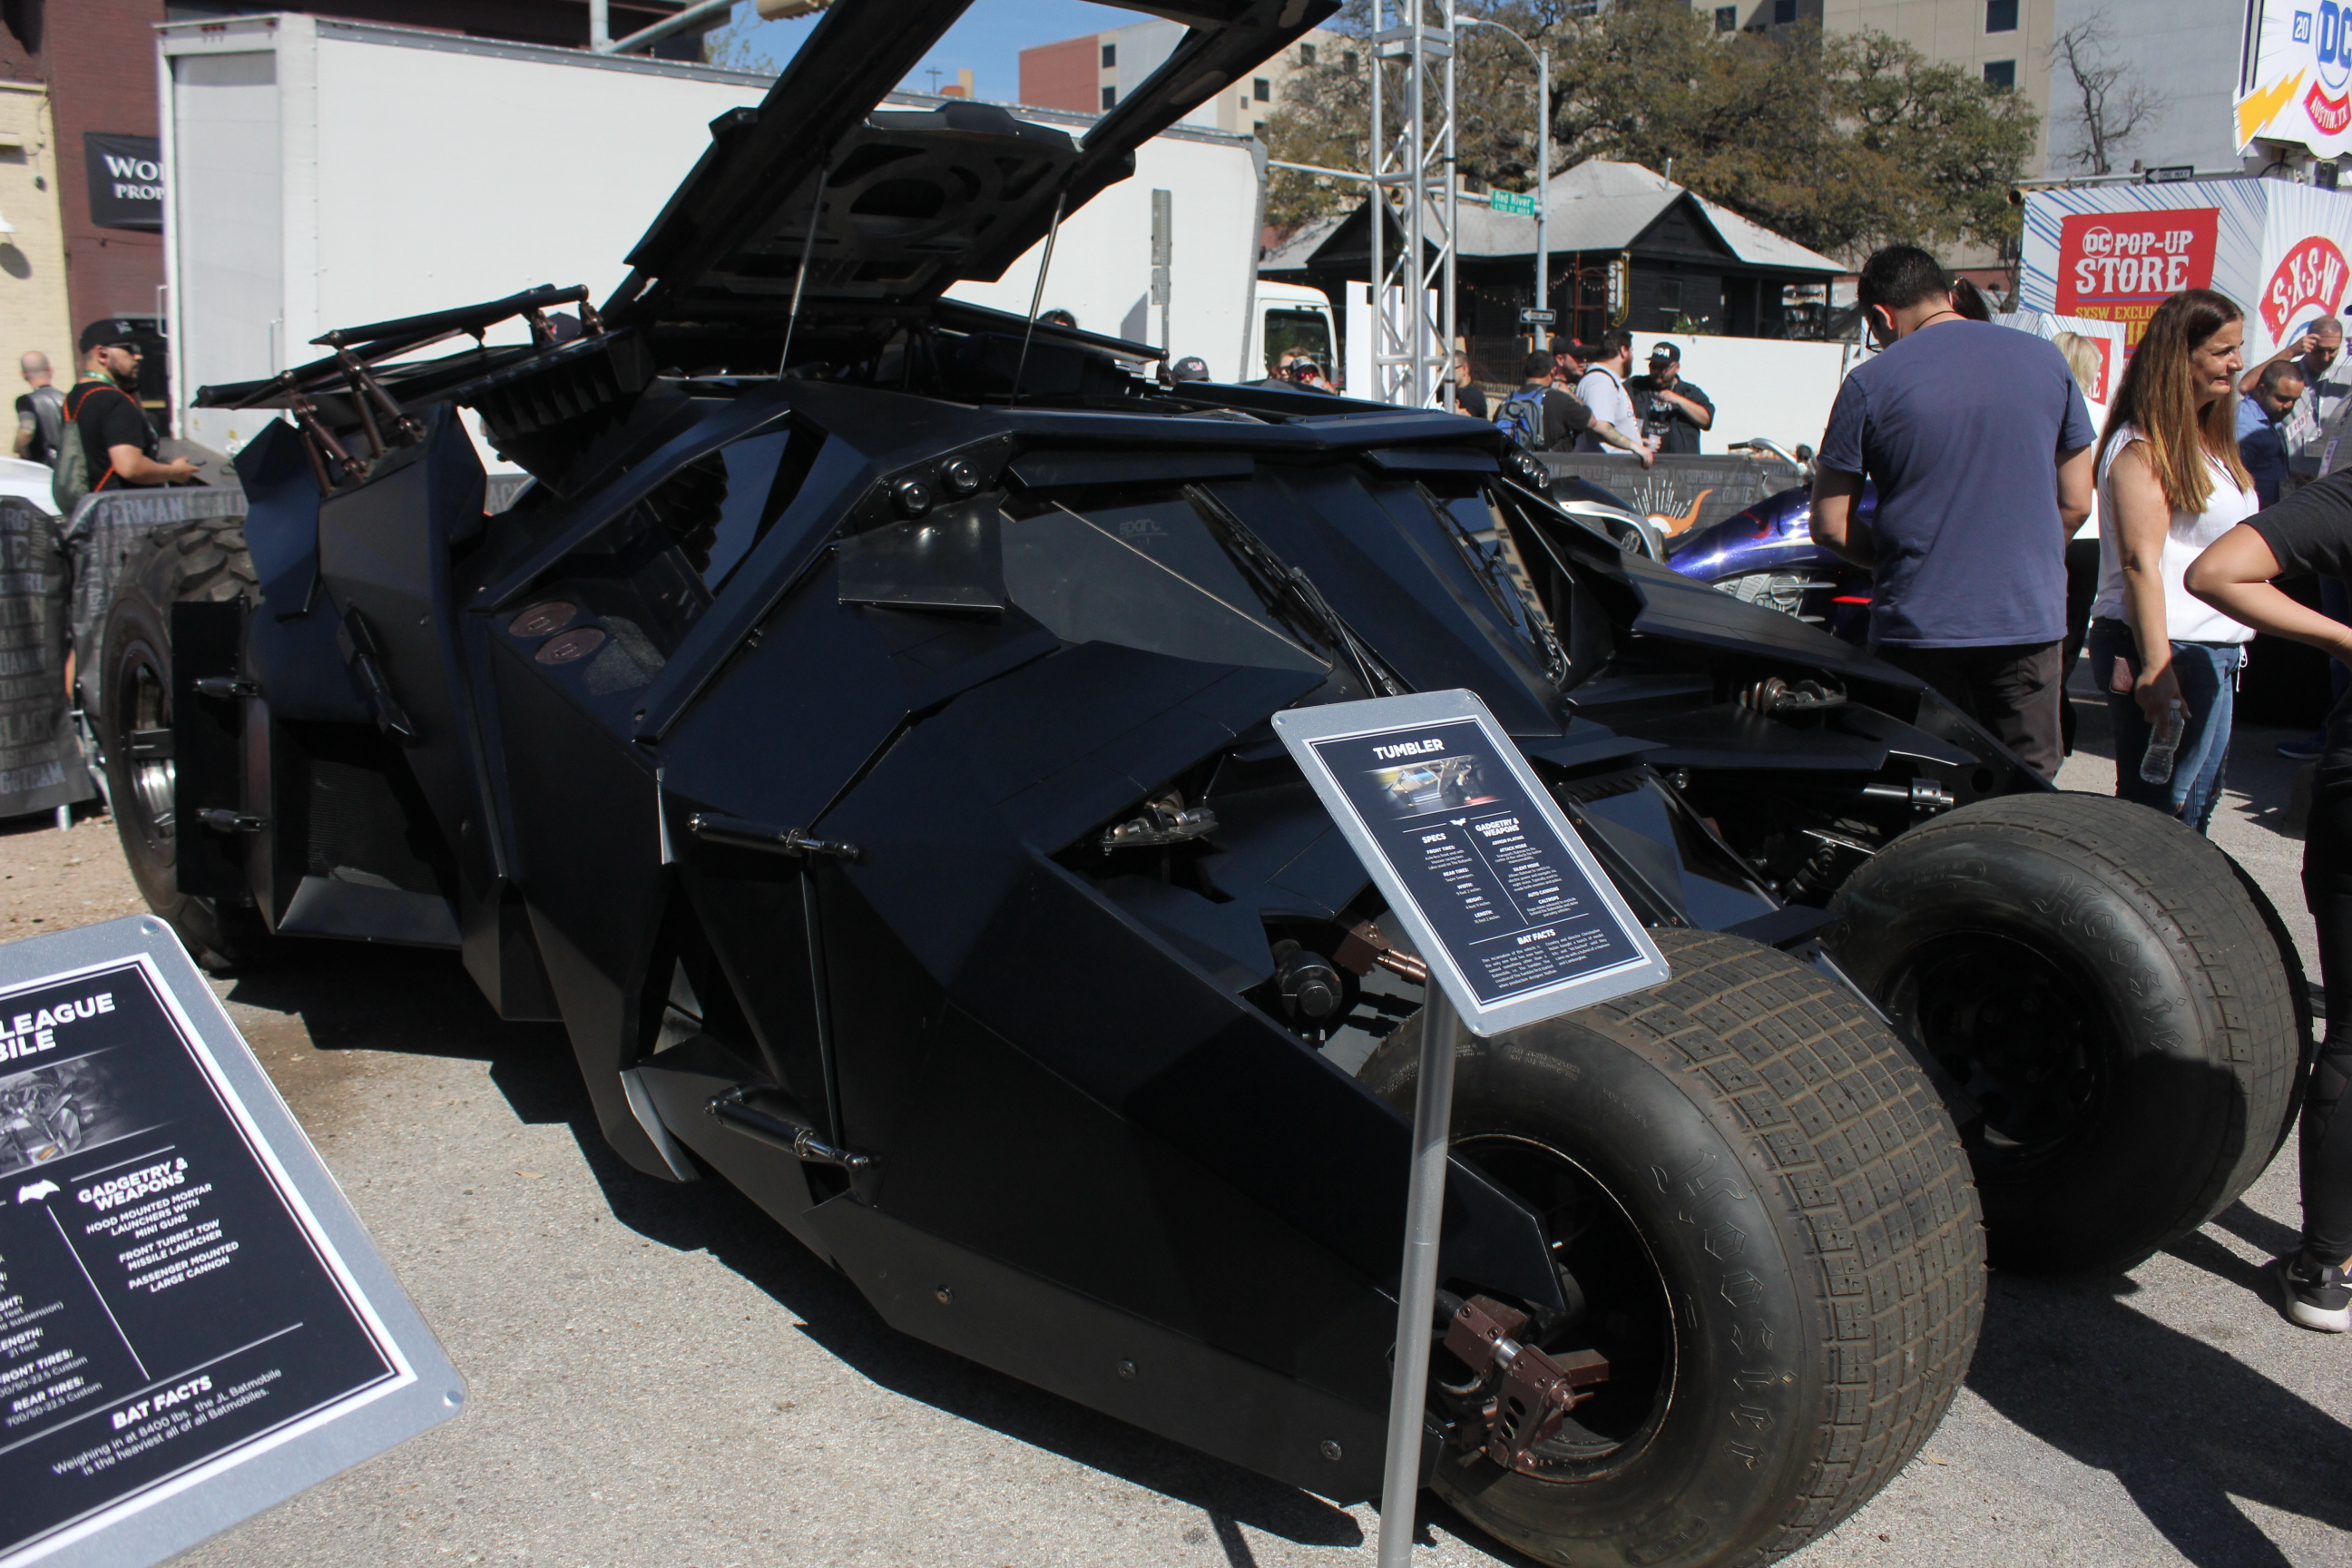 Is it a tank or a Batmobile? Maybe that's the point.